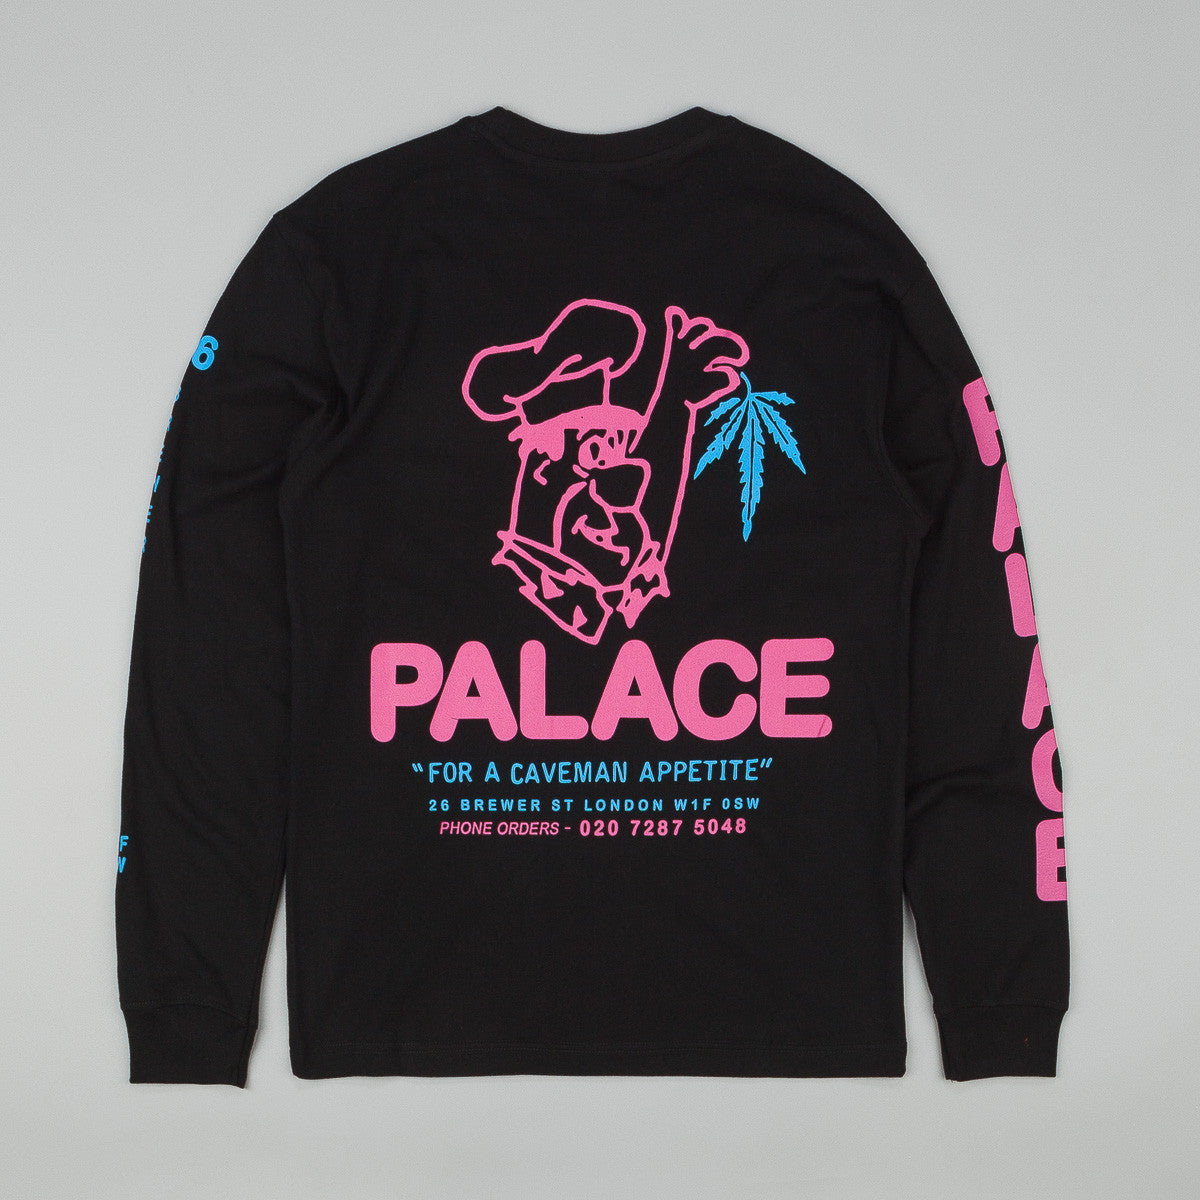 Palace Caveman Long Sleeve T-Shirt - Black